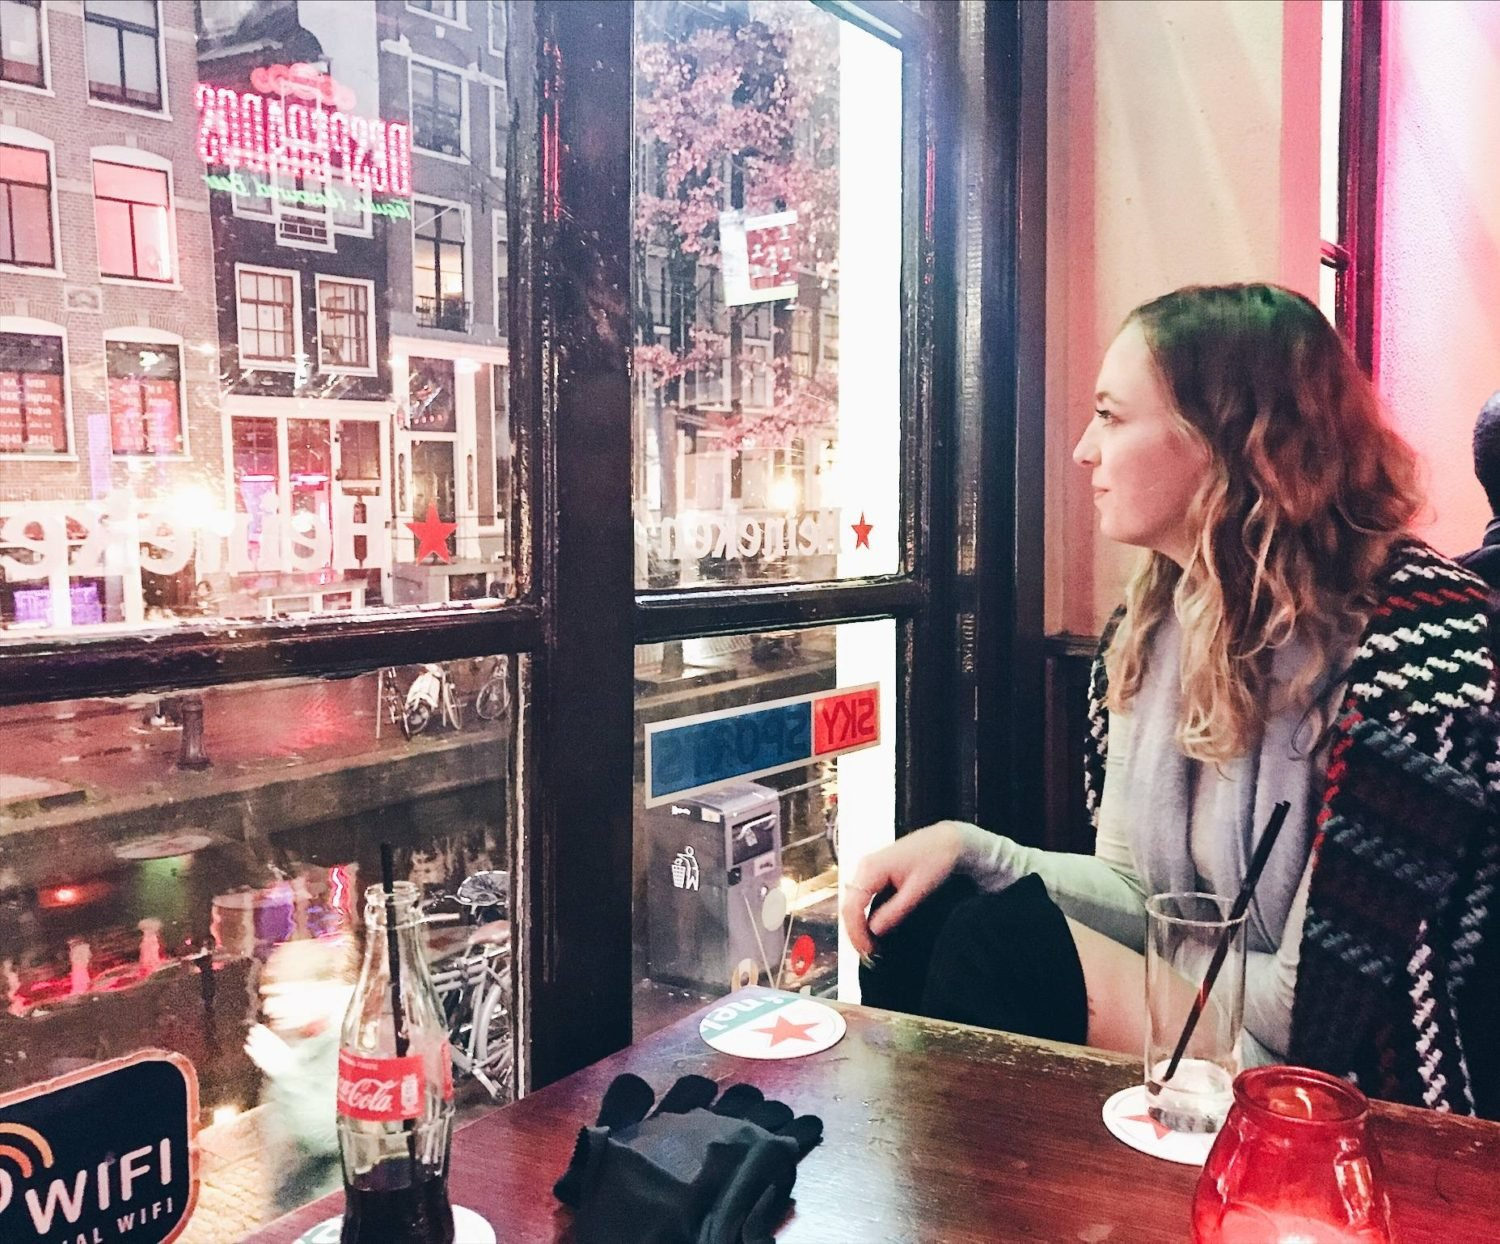 Can female tourists go to the red light district in Amsterdam?